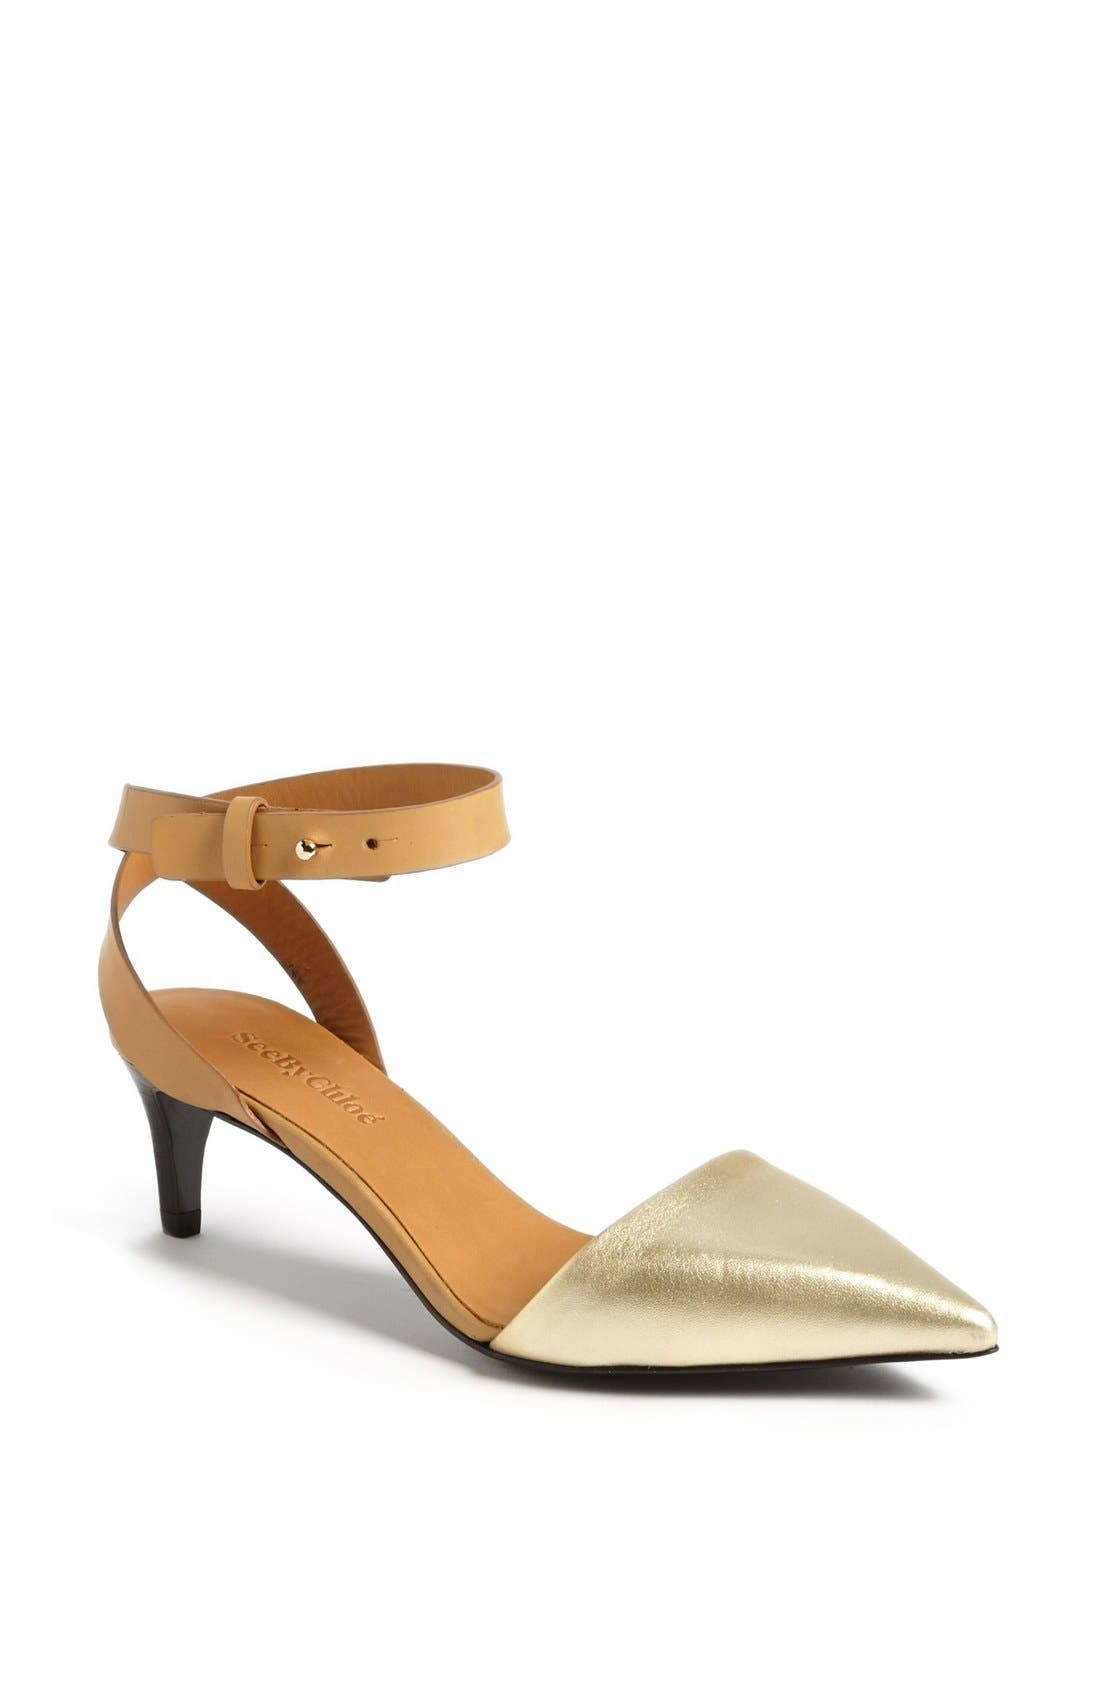 Main Image - See by Chloé 'Hera' Ankle Strap D'Orsay Pump